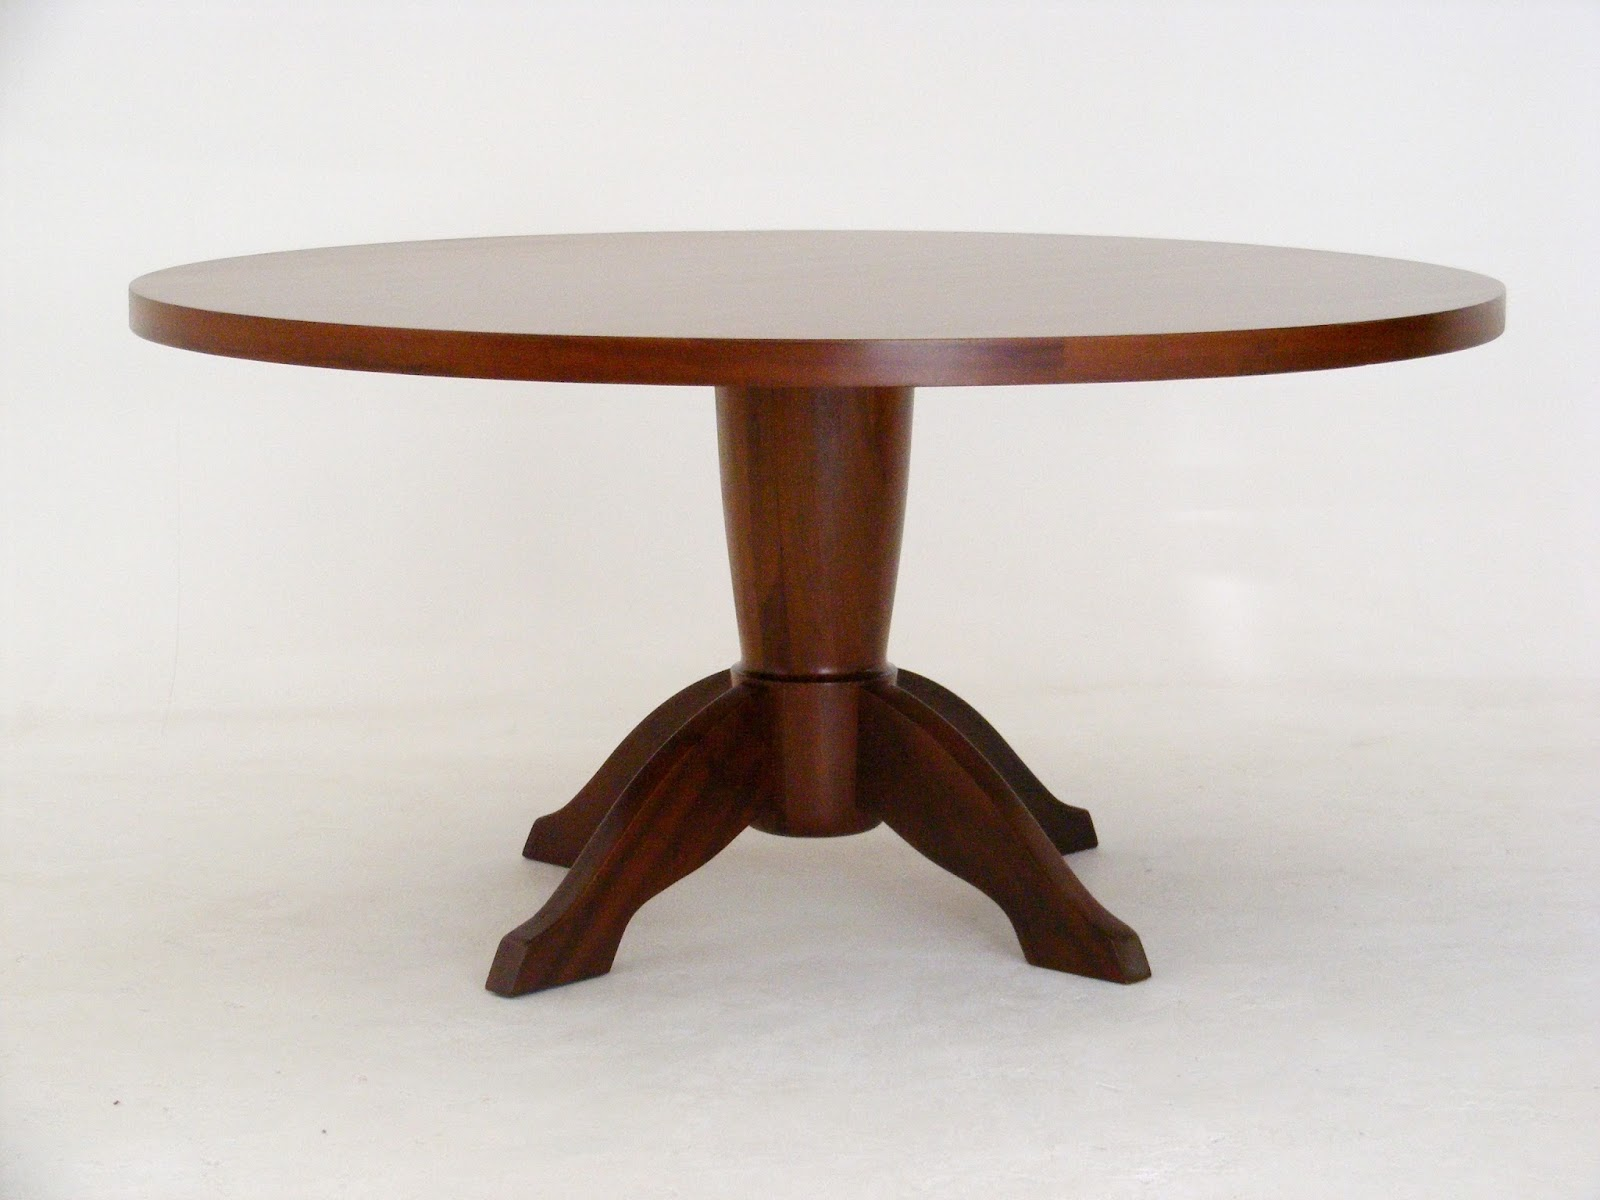 A Classic Round Imbuia Dining Table By EE Meyer Cabinet Makers South Africa Late 60s Early 70s Diameter 152cm